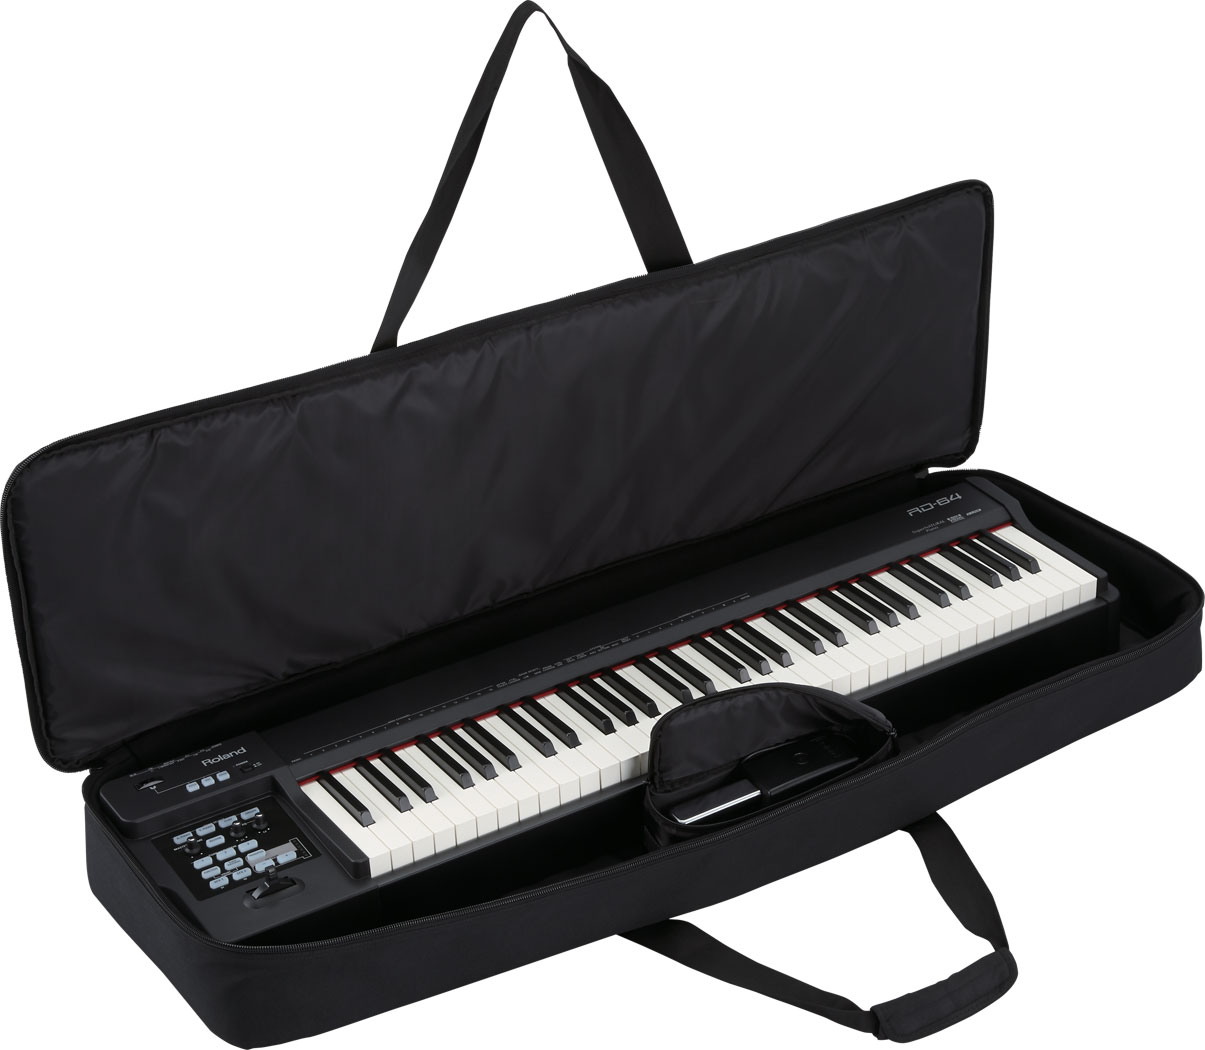 rd 64 angle case gal - Roland Rd-64 Digital Piano